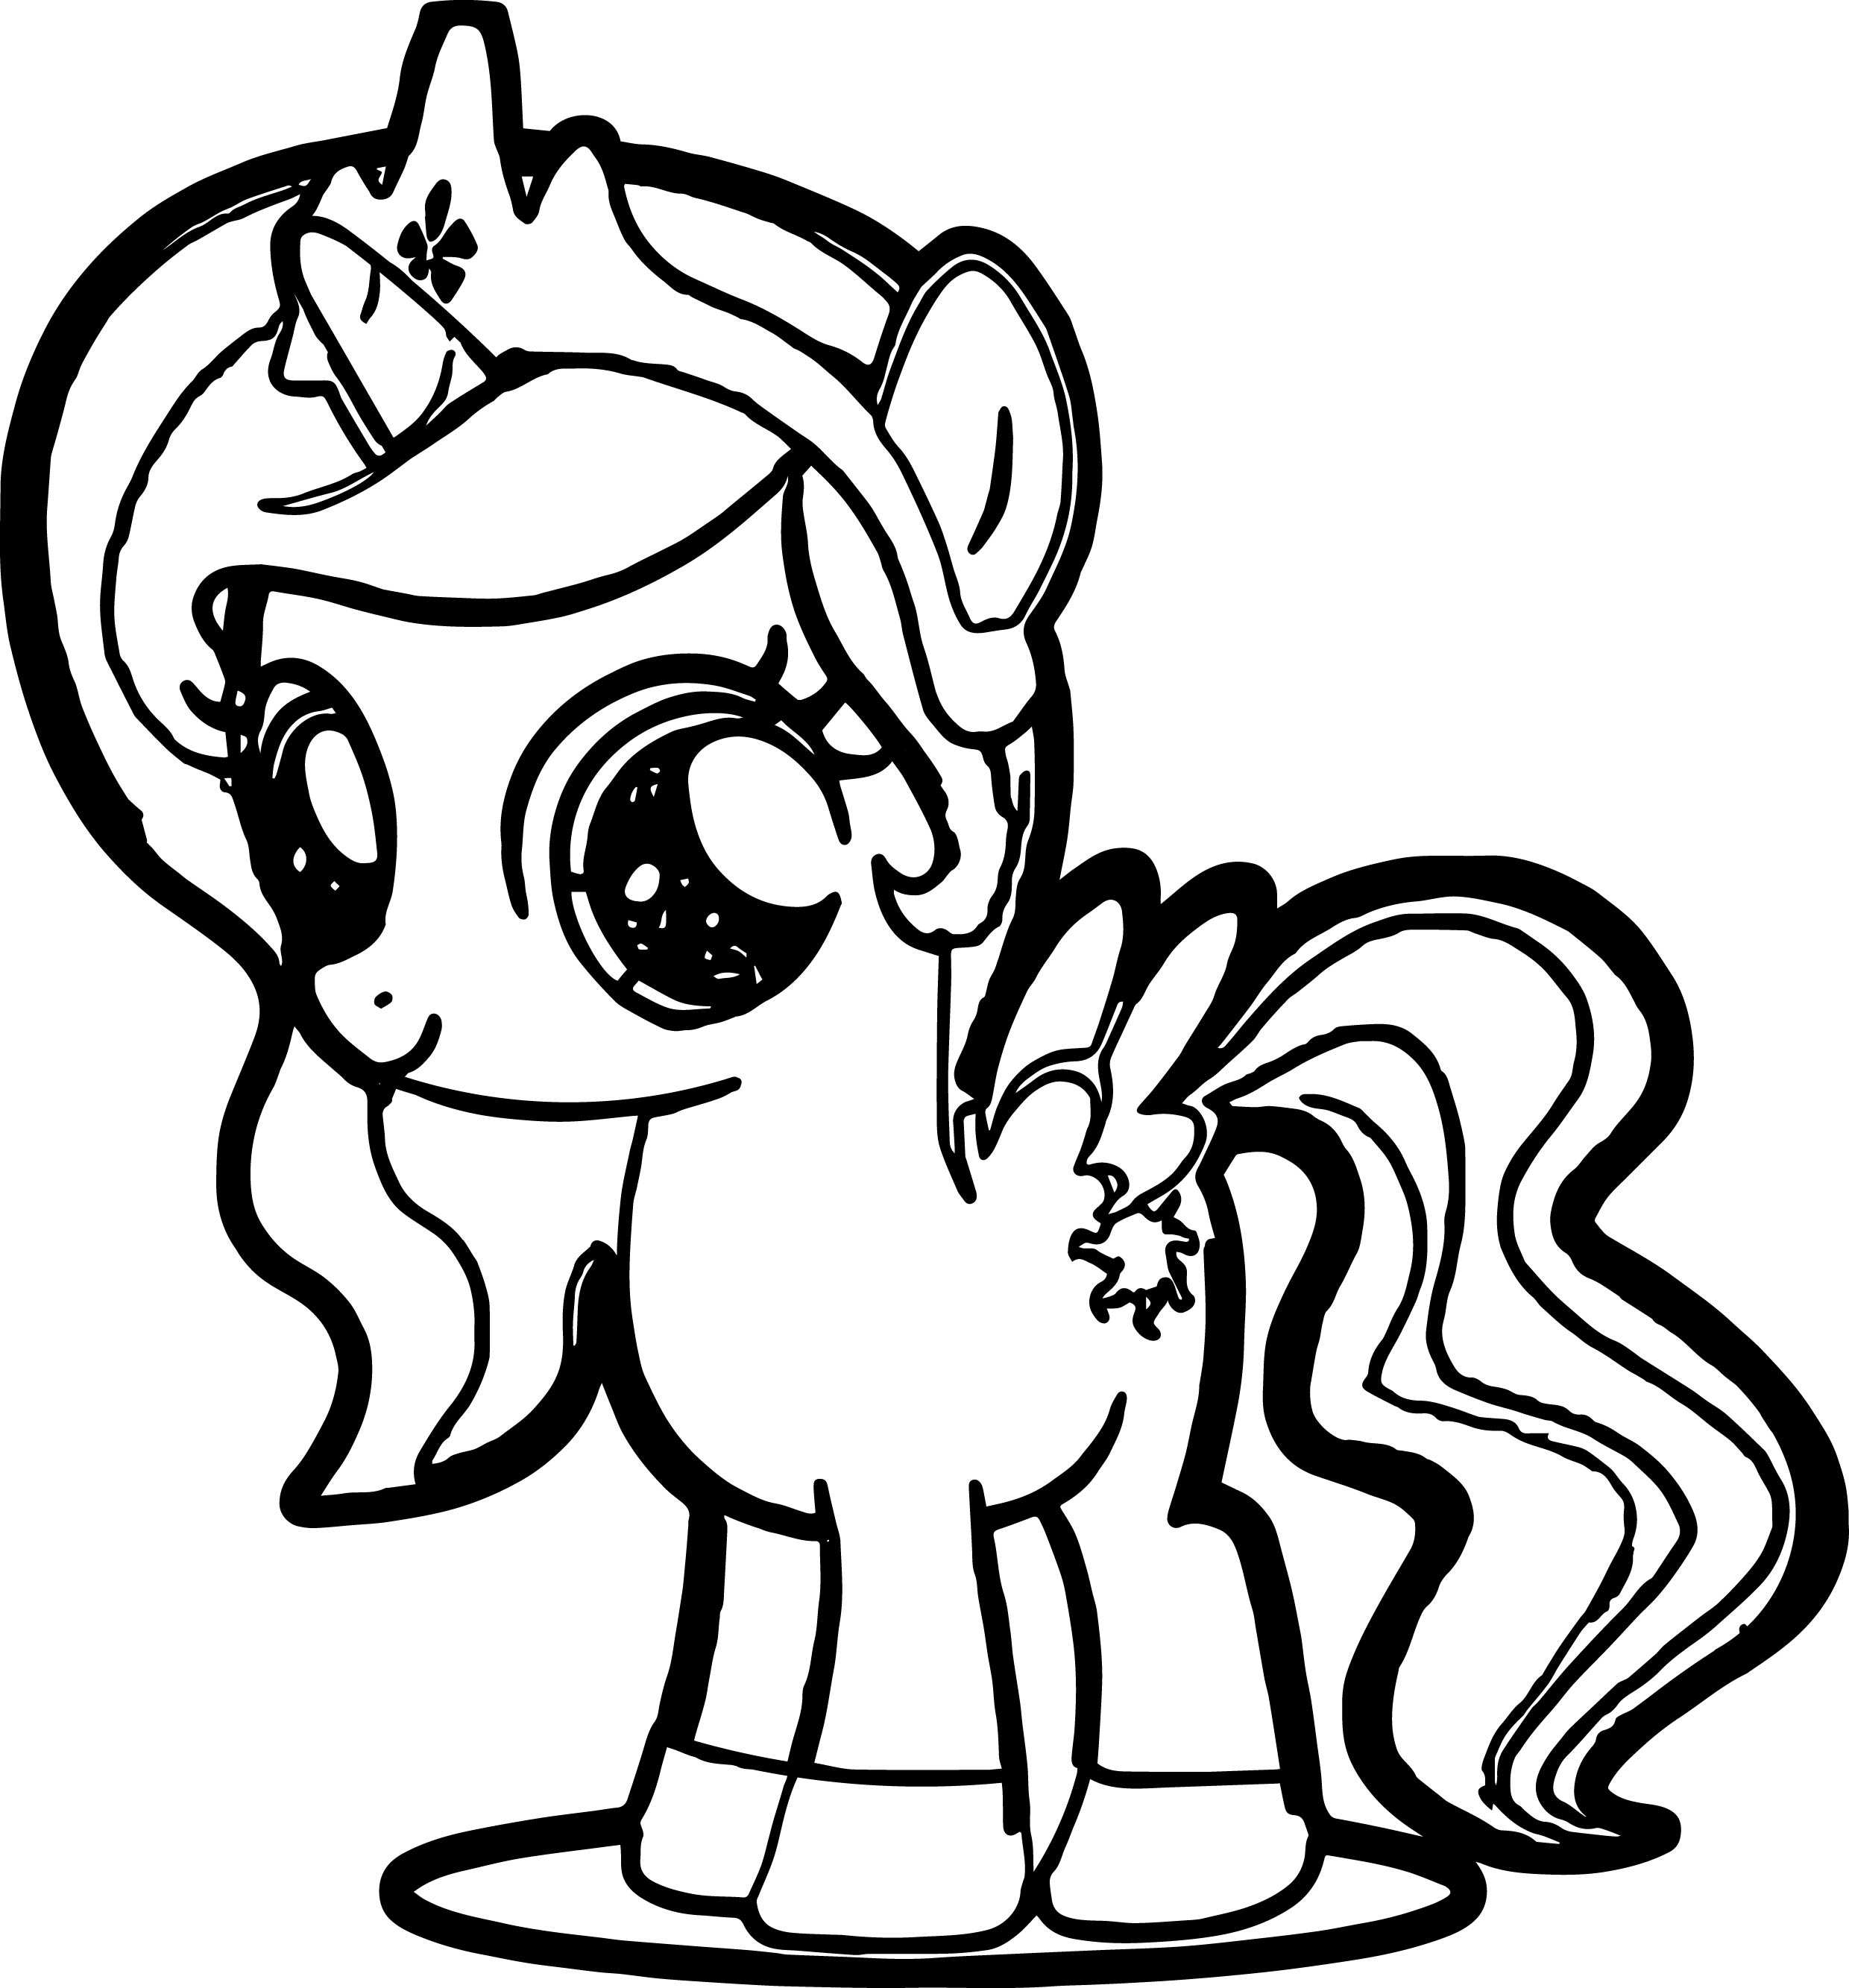 little pony coloring pages - cute pony coloring page